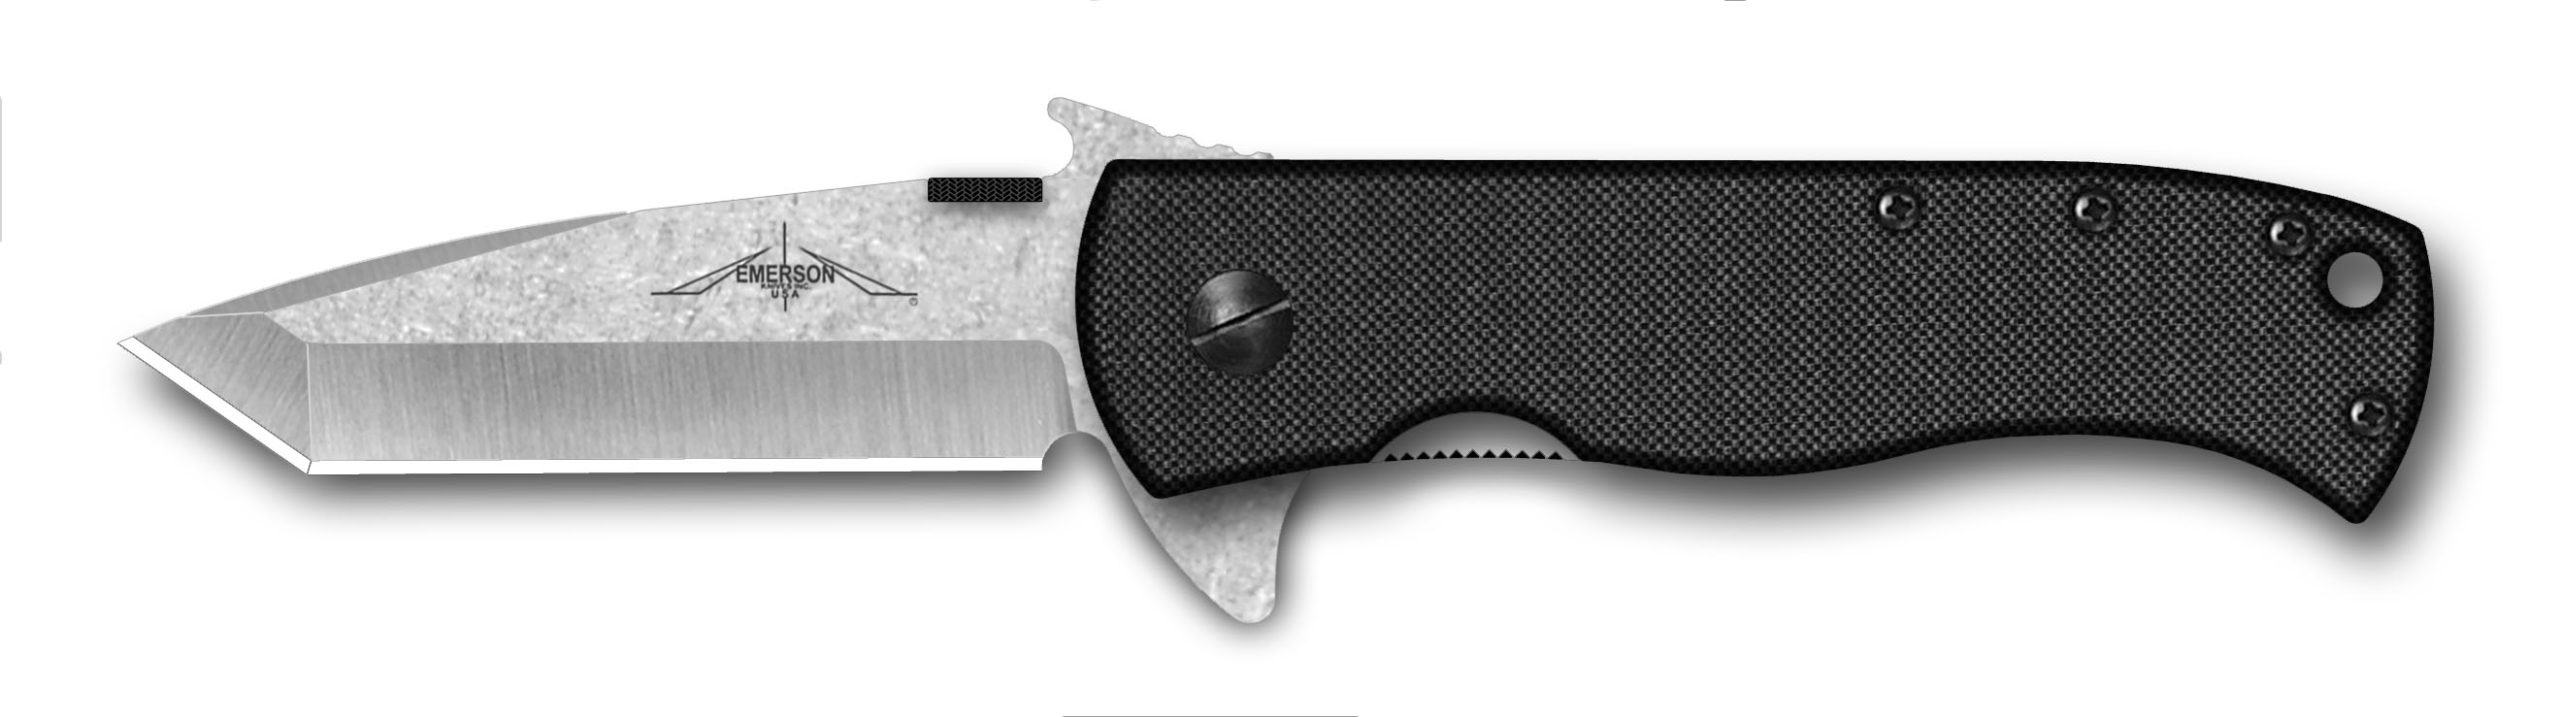 CCQ 7 Flipper from Emerson Knives